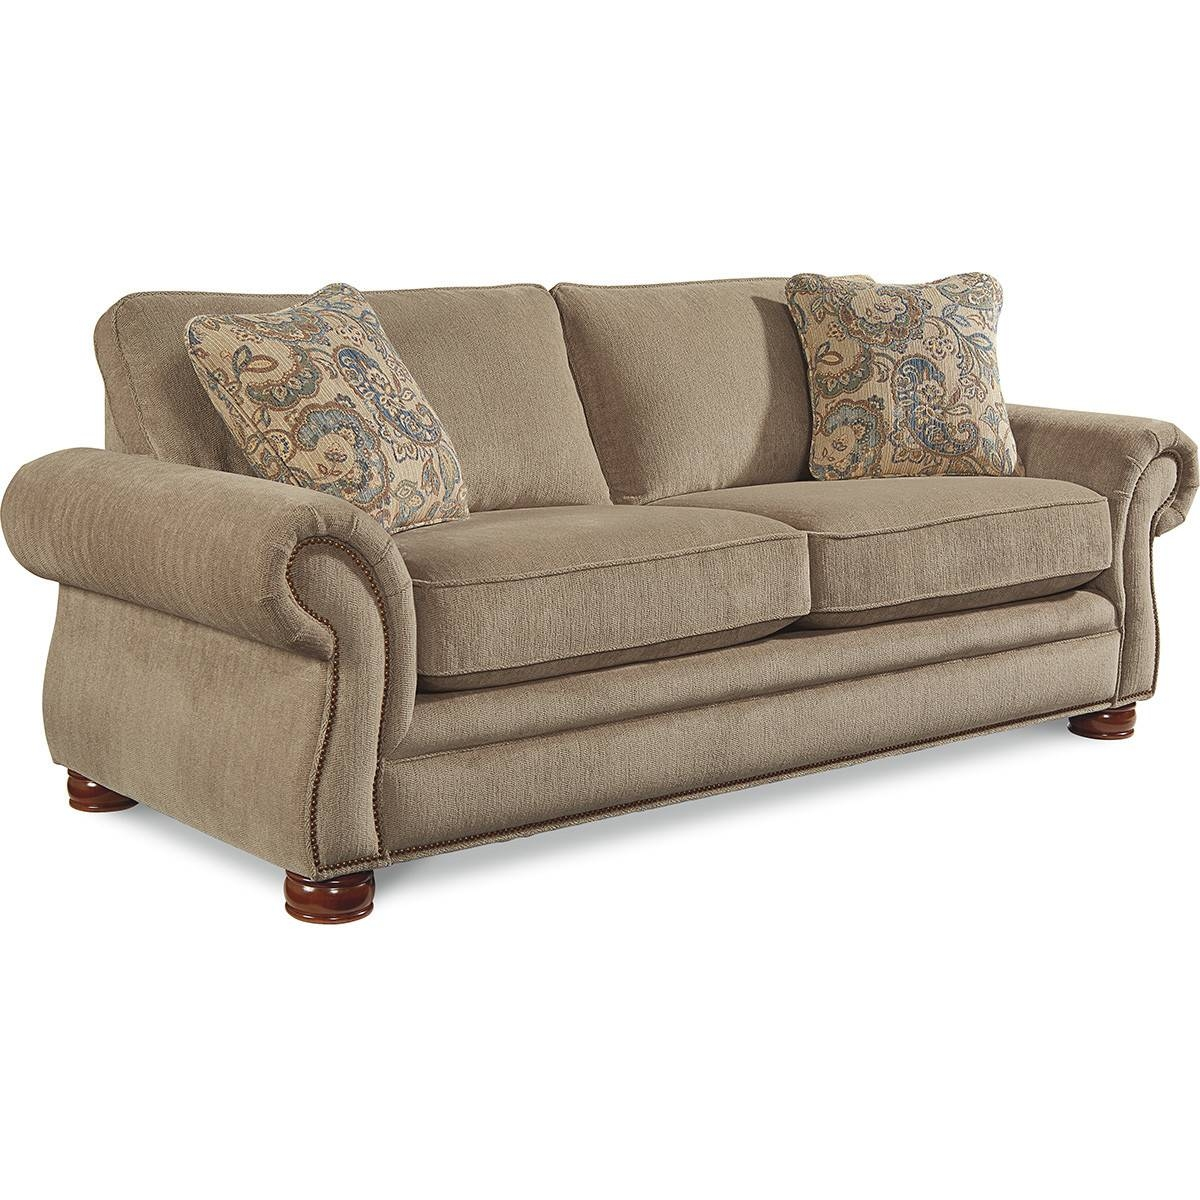 Best Lazy Boy Queen Sleeper Sofa 99 With Additional Sectional with Lazyboy Sectional Sofas (Image 2 of 25)